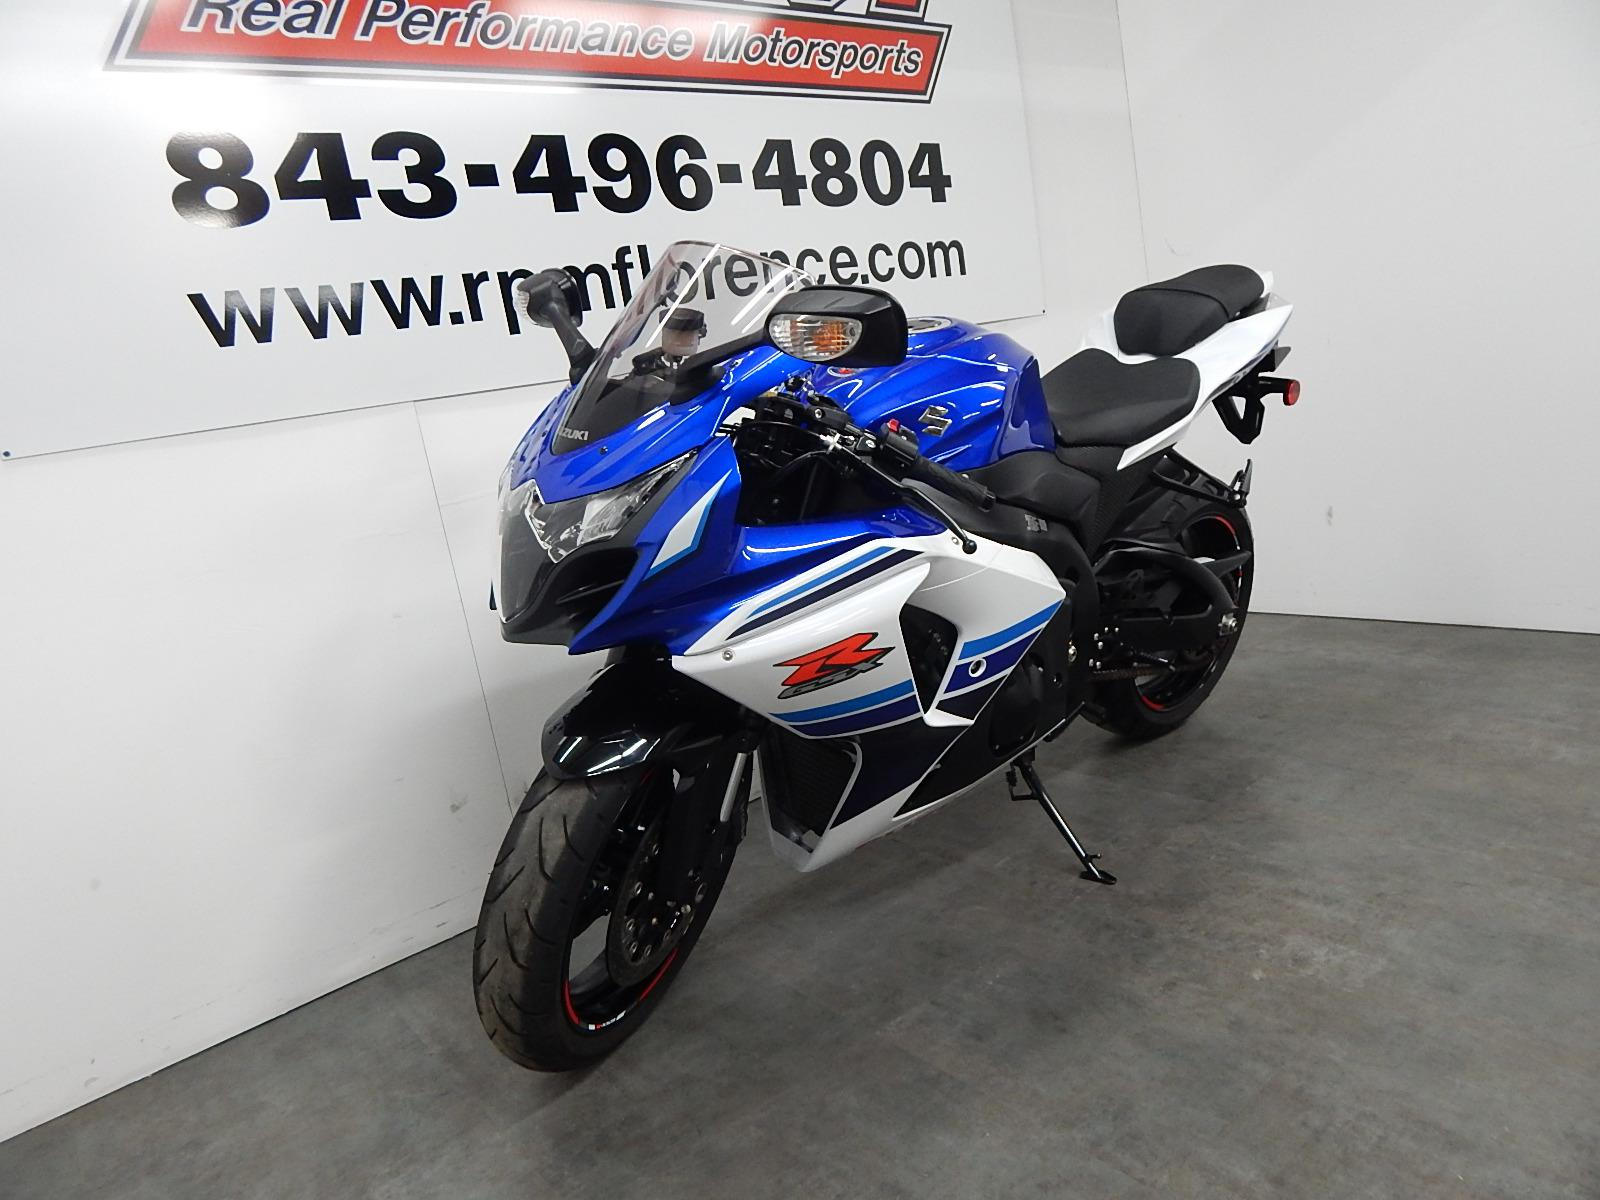 2016 Suzuki GSX-R1000 for sale in Florence, SC | Real